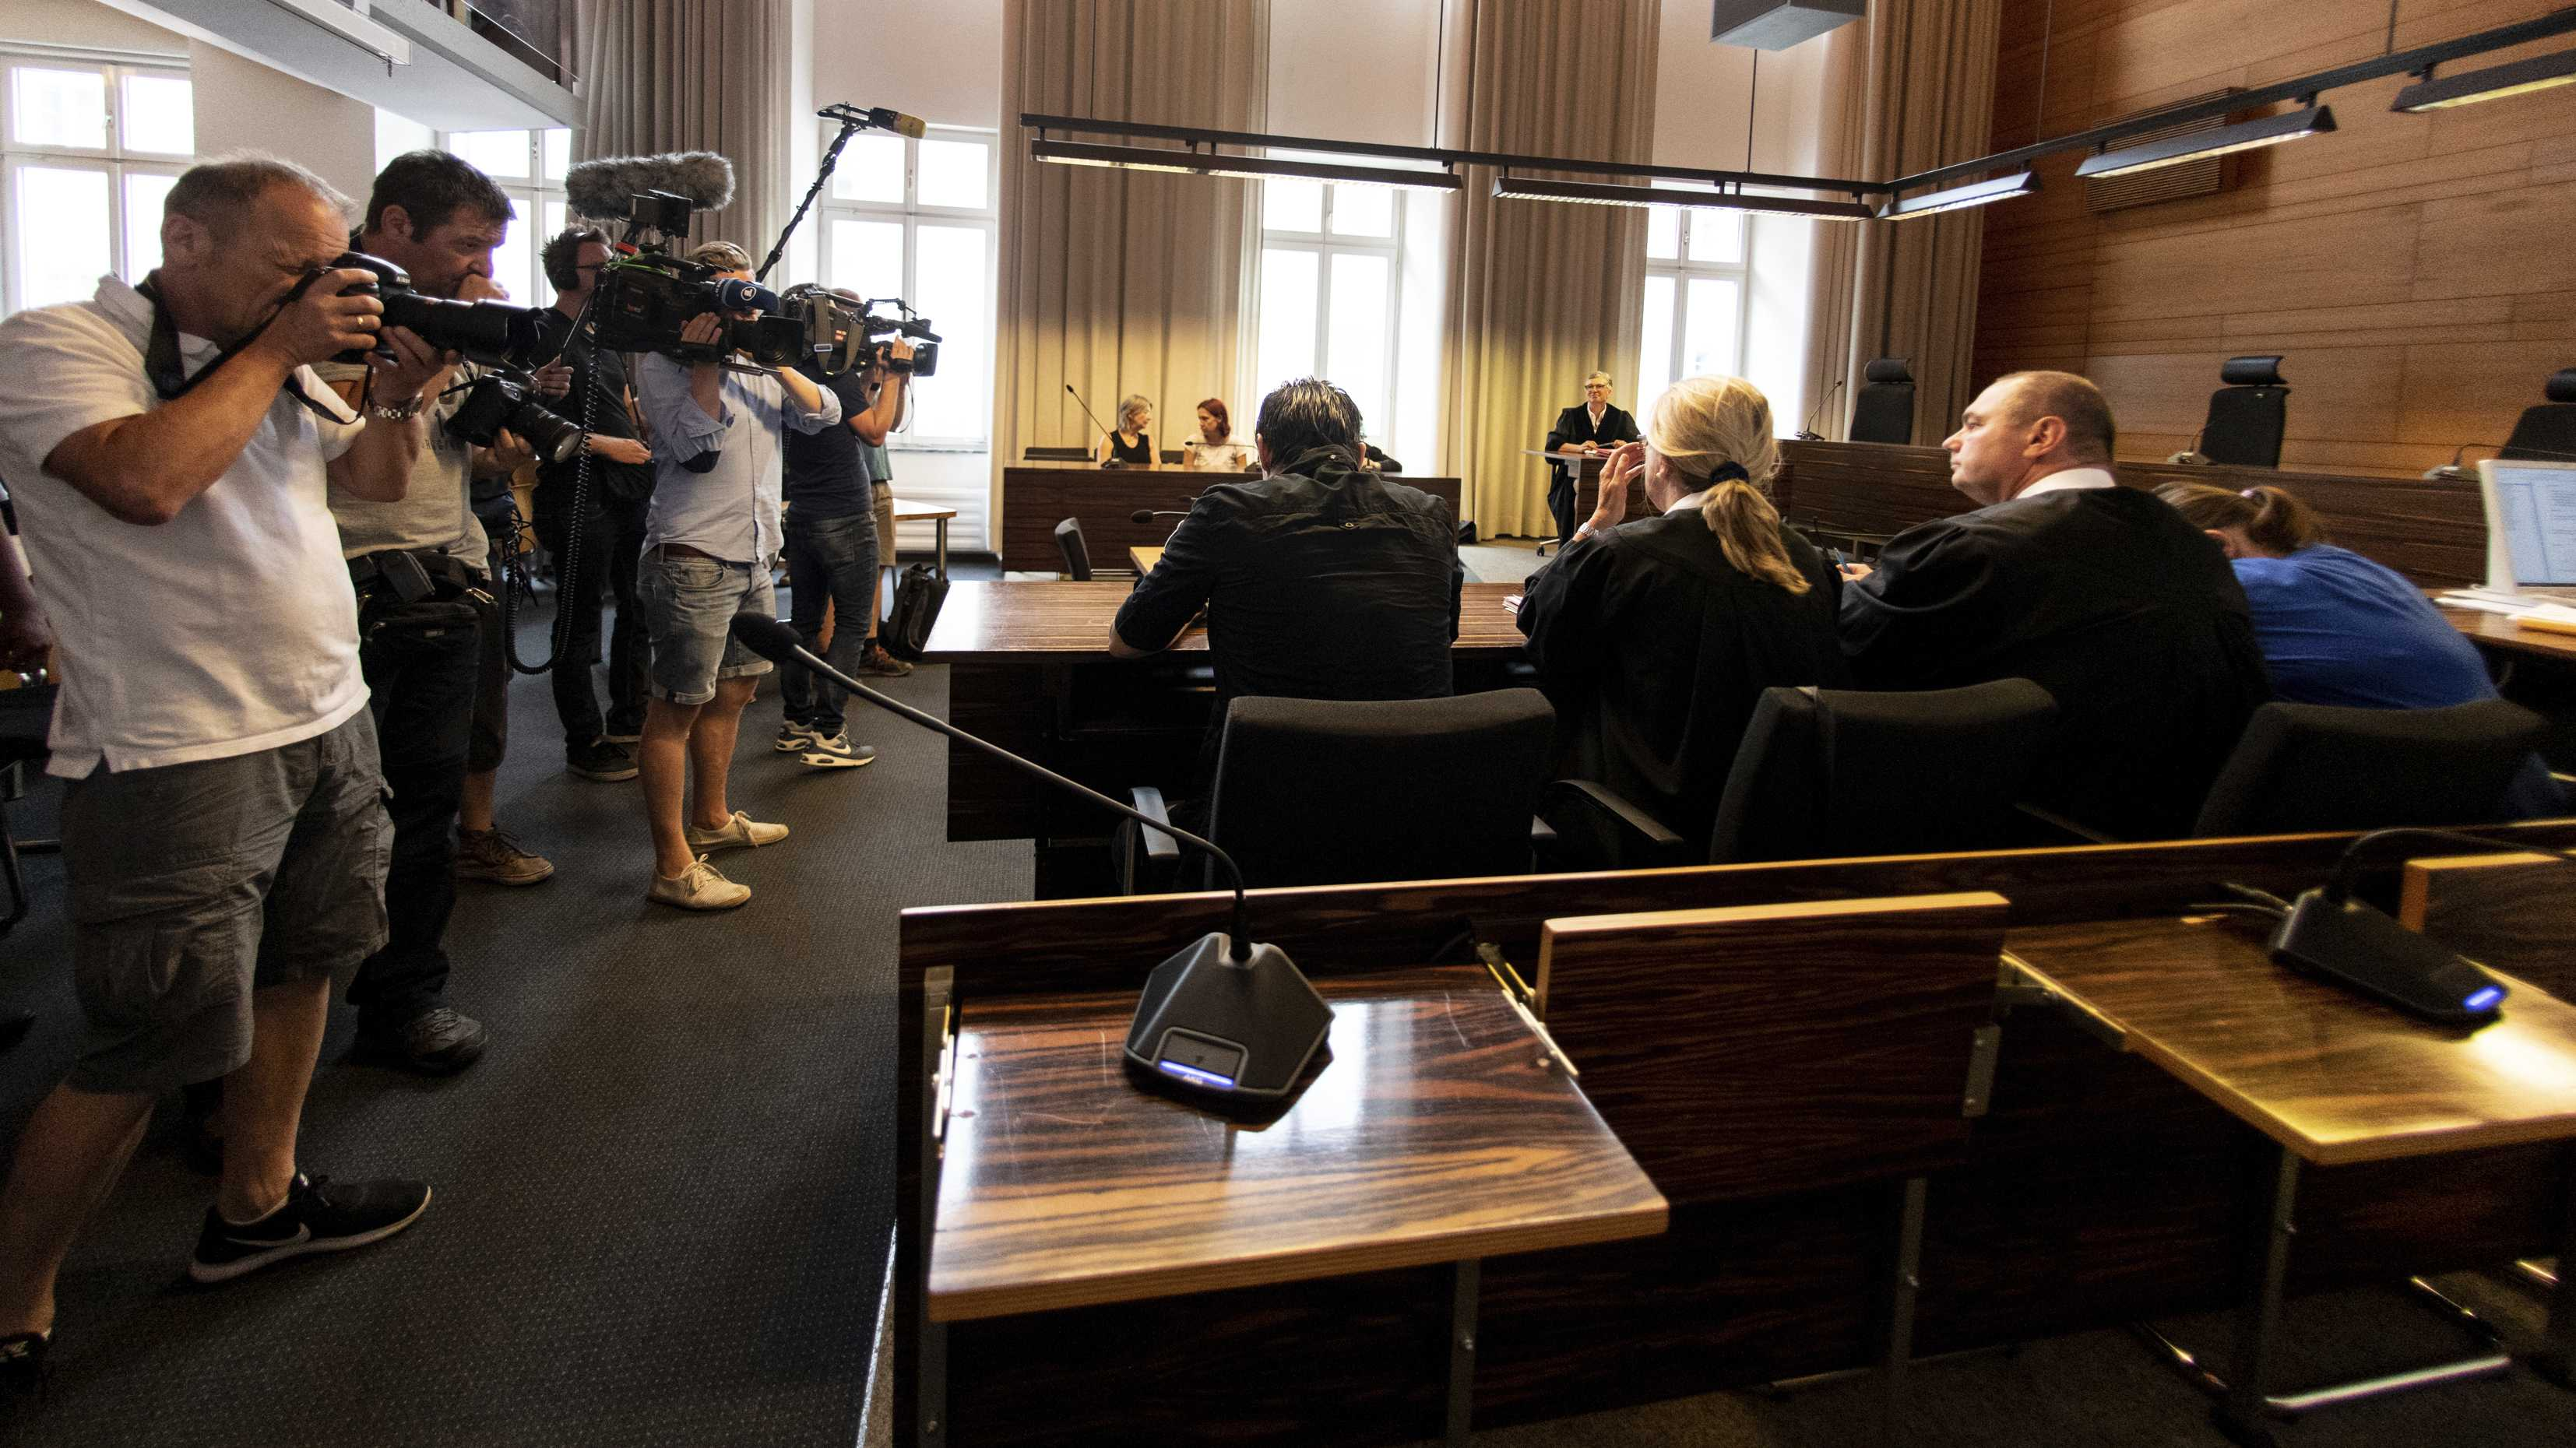 Photographers take pictures of the a man and a woman in the court in Freiburg, southern Germany, Tuesday, Aug. 7, 2018 before they were sentenced to long-term prison sentence for for offering the 9-year-old son of the woman for raping by pedophiles. (Patrick Seeger/dpa via AP)